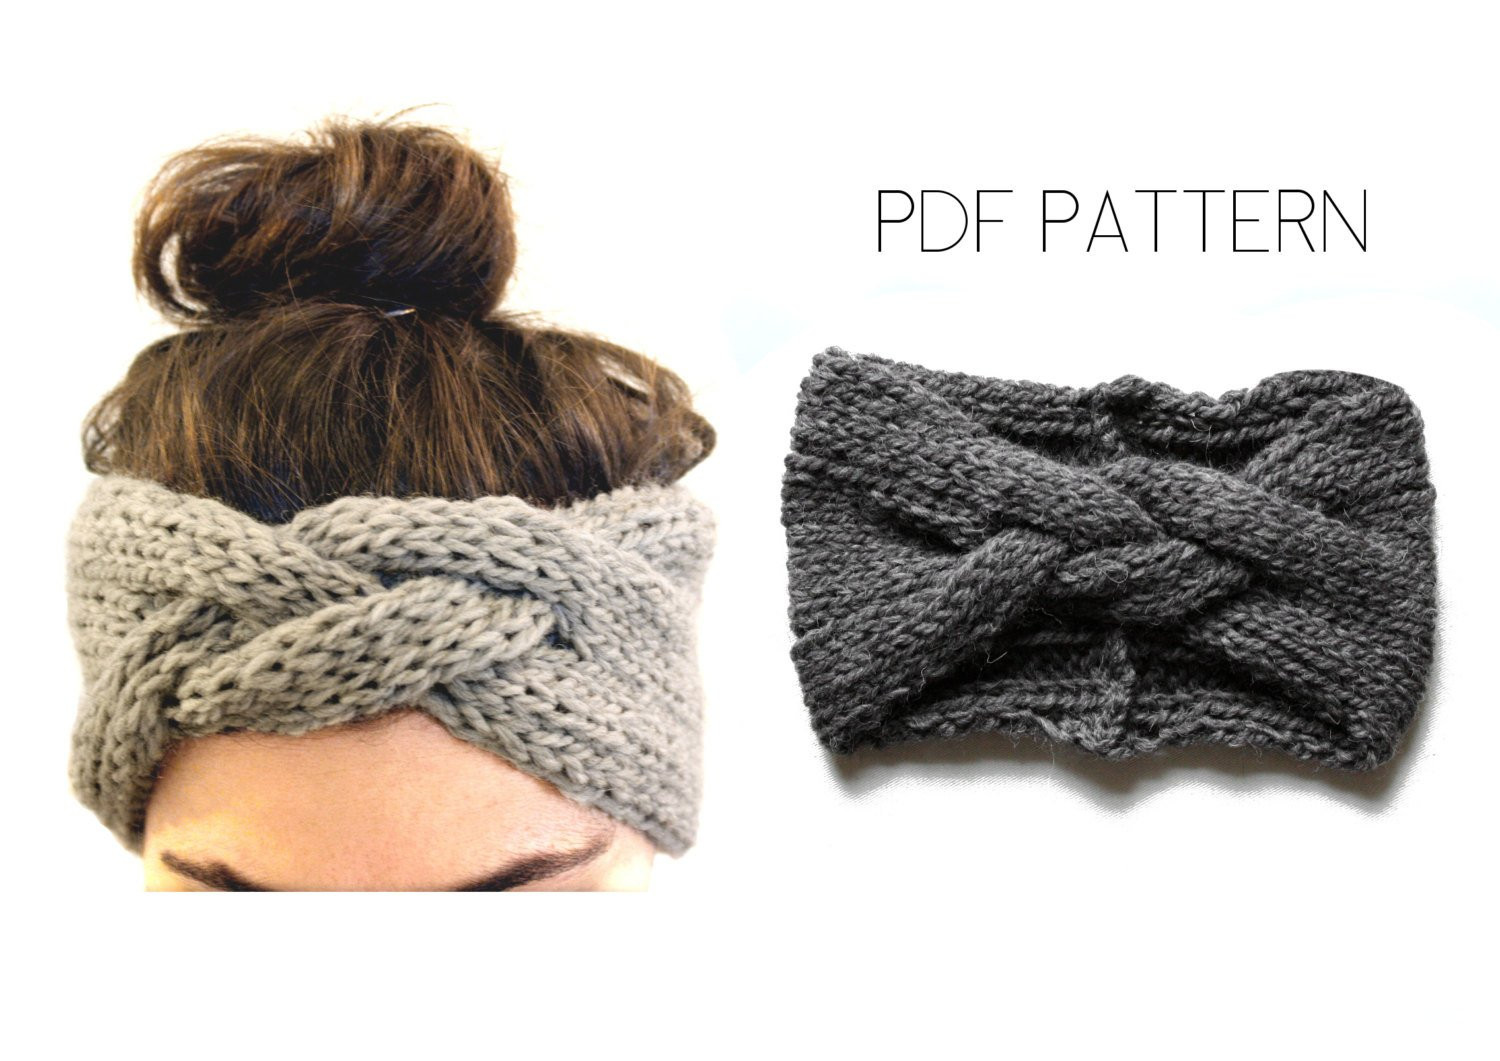 Unique Braided Headband Pdf Knitting Pattern by Westlake Designs Braided Knit Headband Of Amazing 42 Pics Braided Knit Headband